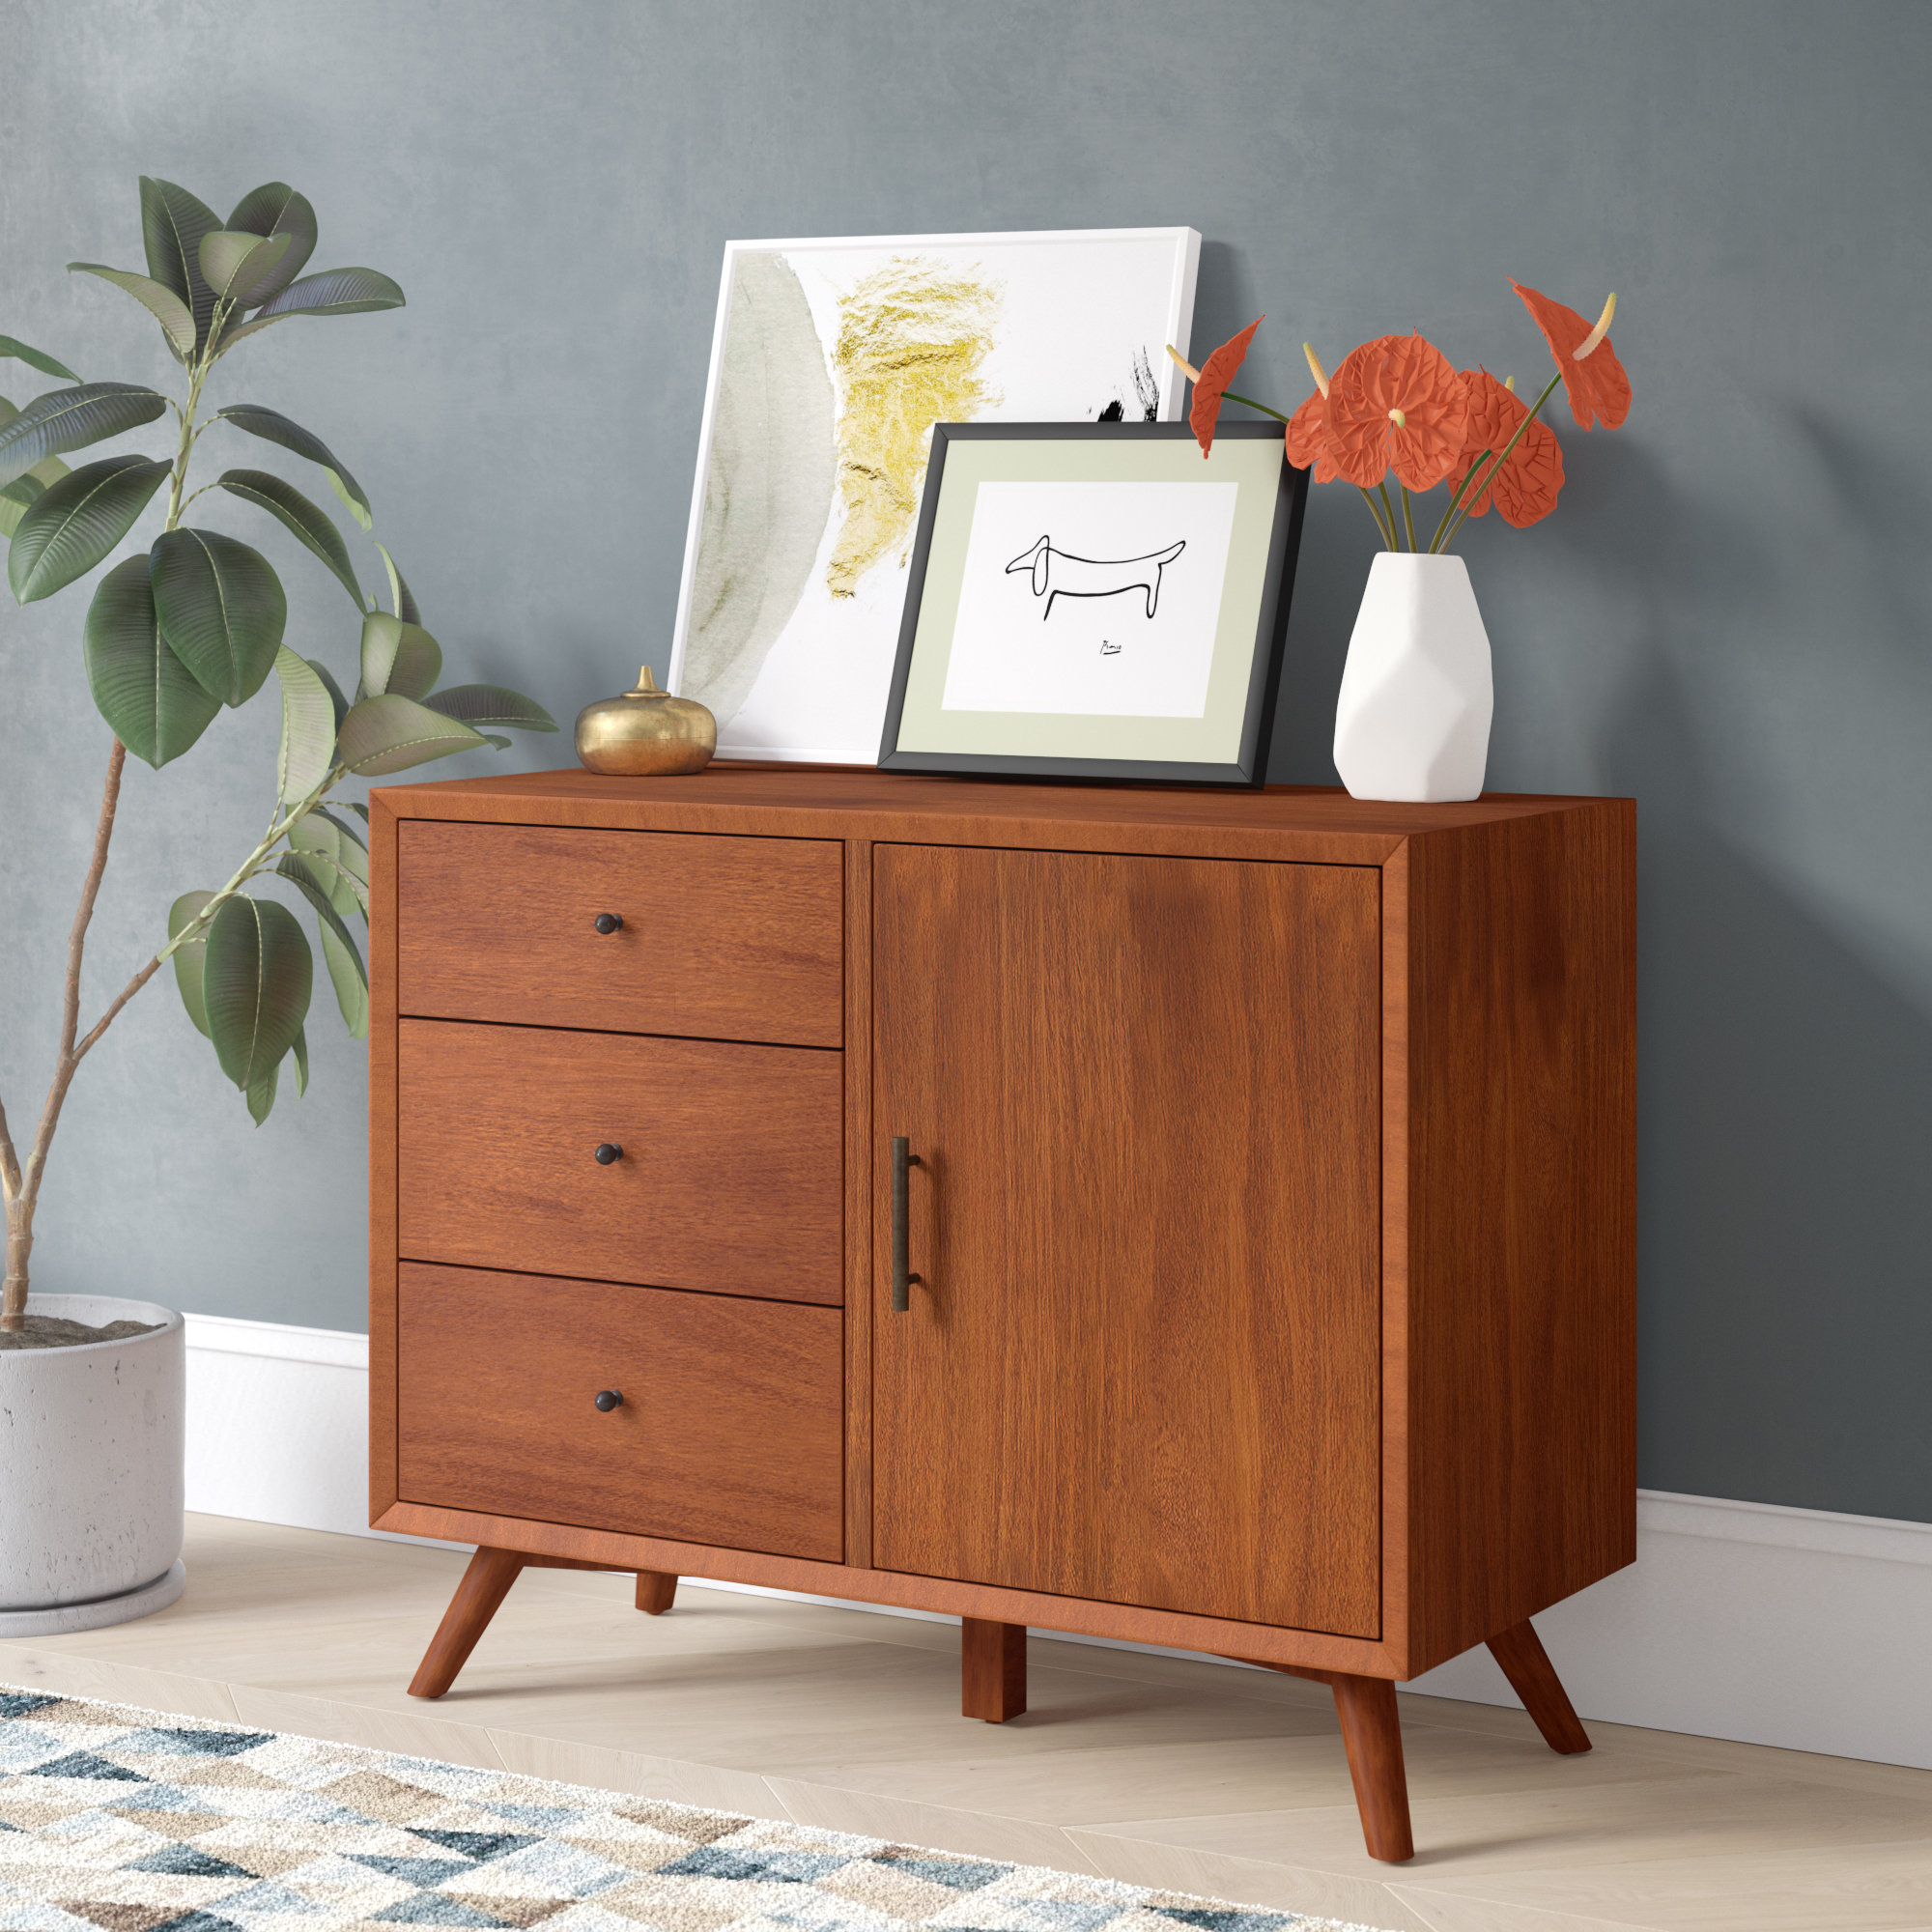 3 Drawer Credenza | Wayfair Throughout Best And Newest Giulia 3 Drawer Credenzas (View 6 of 20)